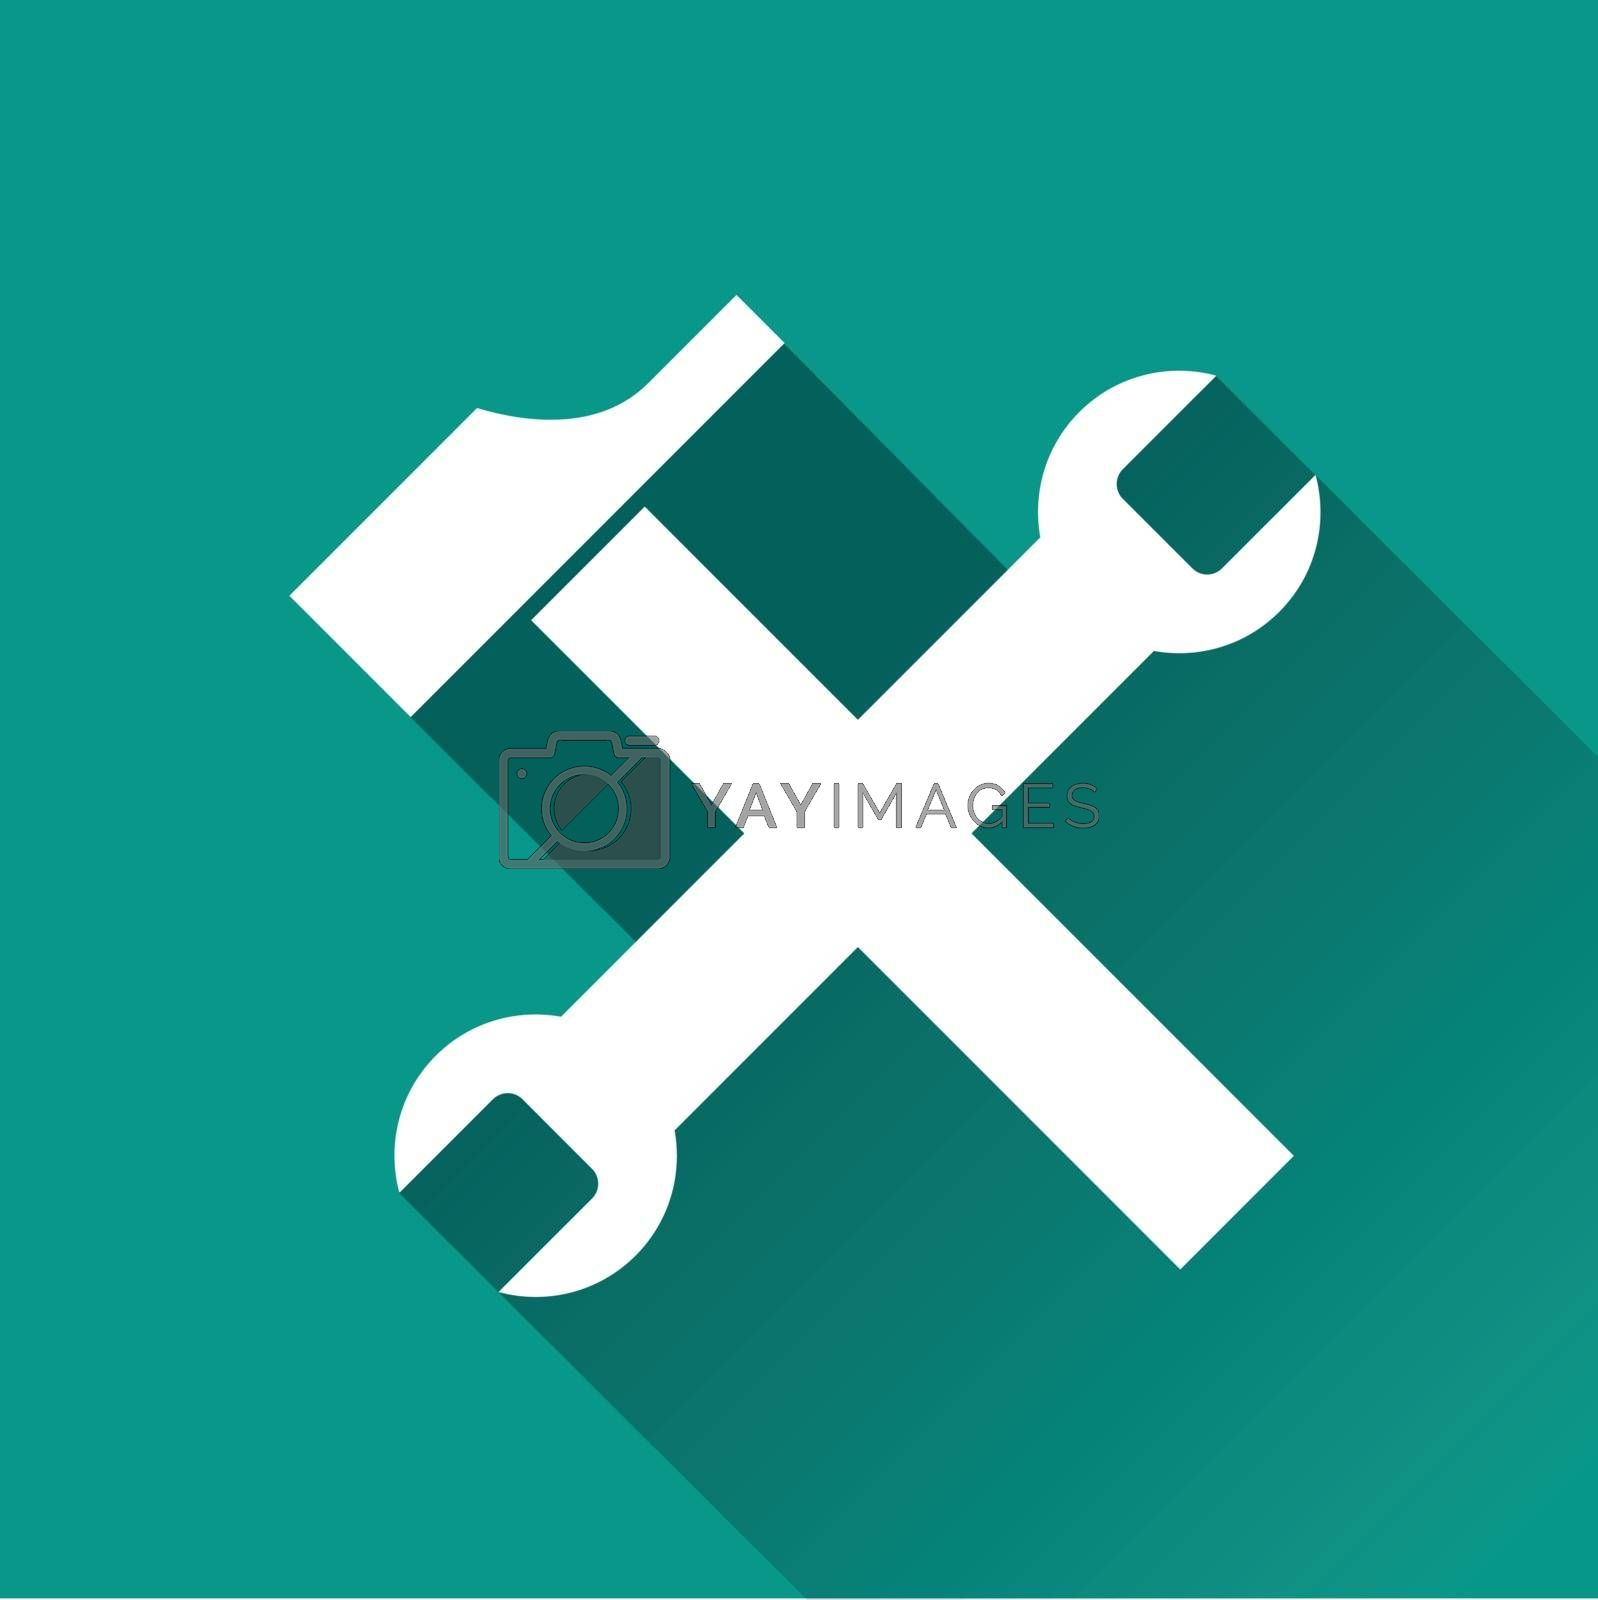 Royalty free image of tools flat design icon by nickylarson974